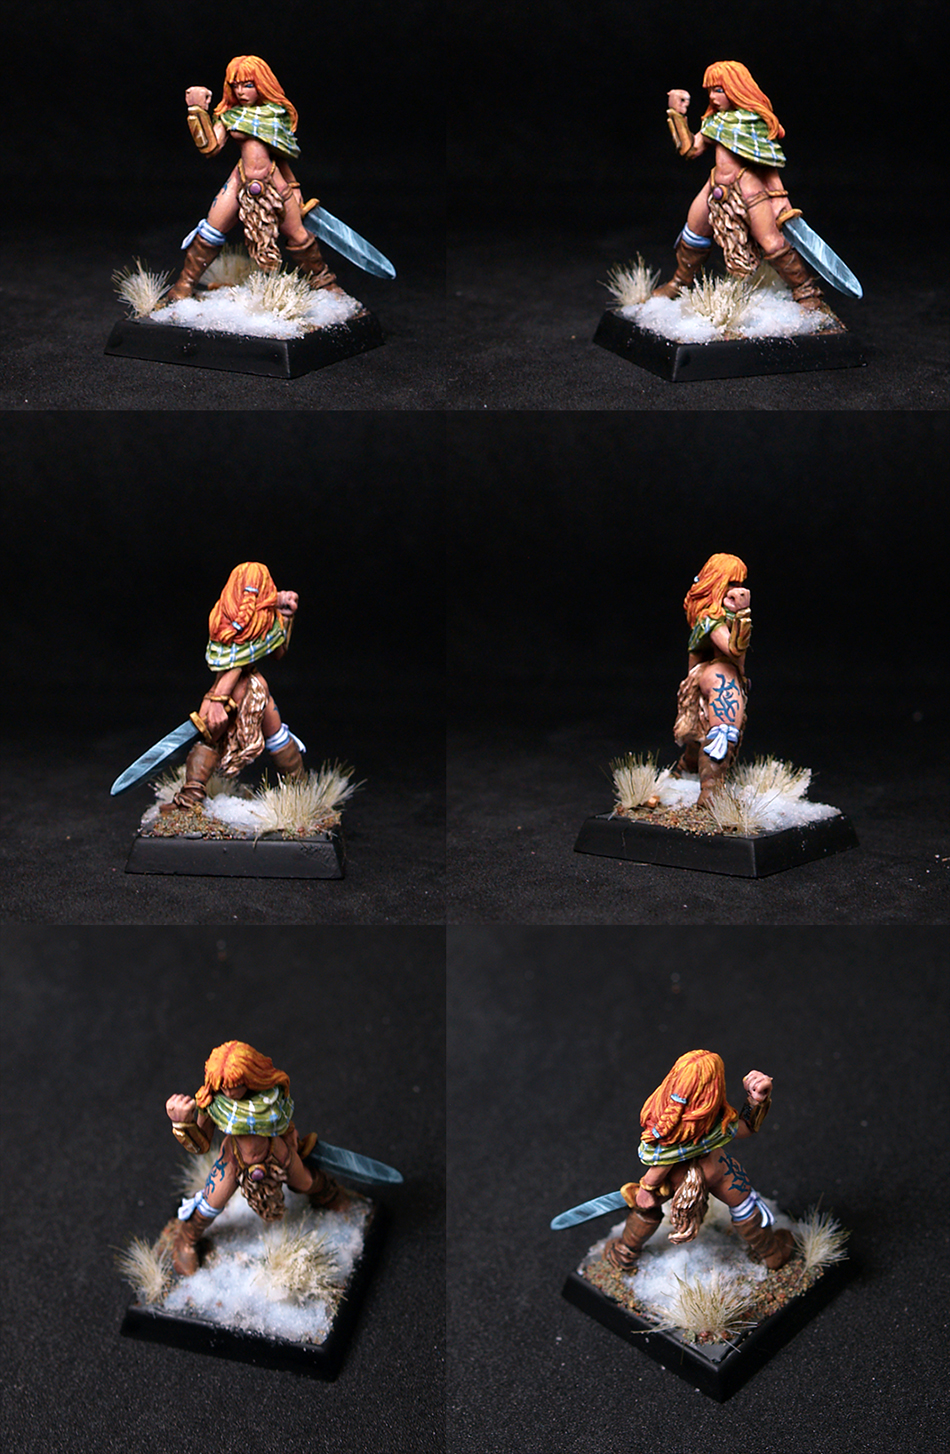 Lorna the Huntress, Female Barbarian